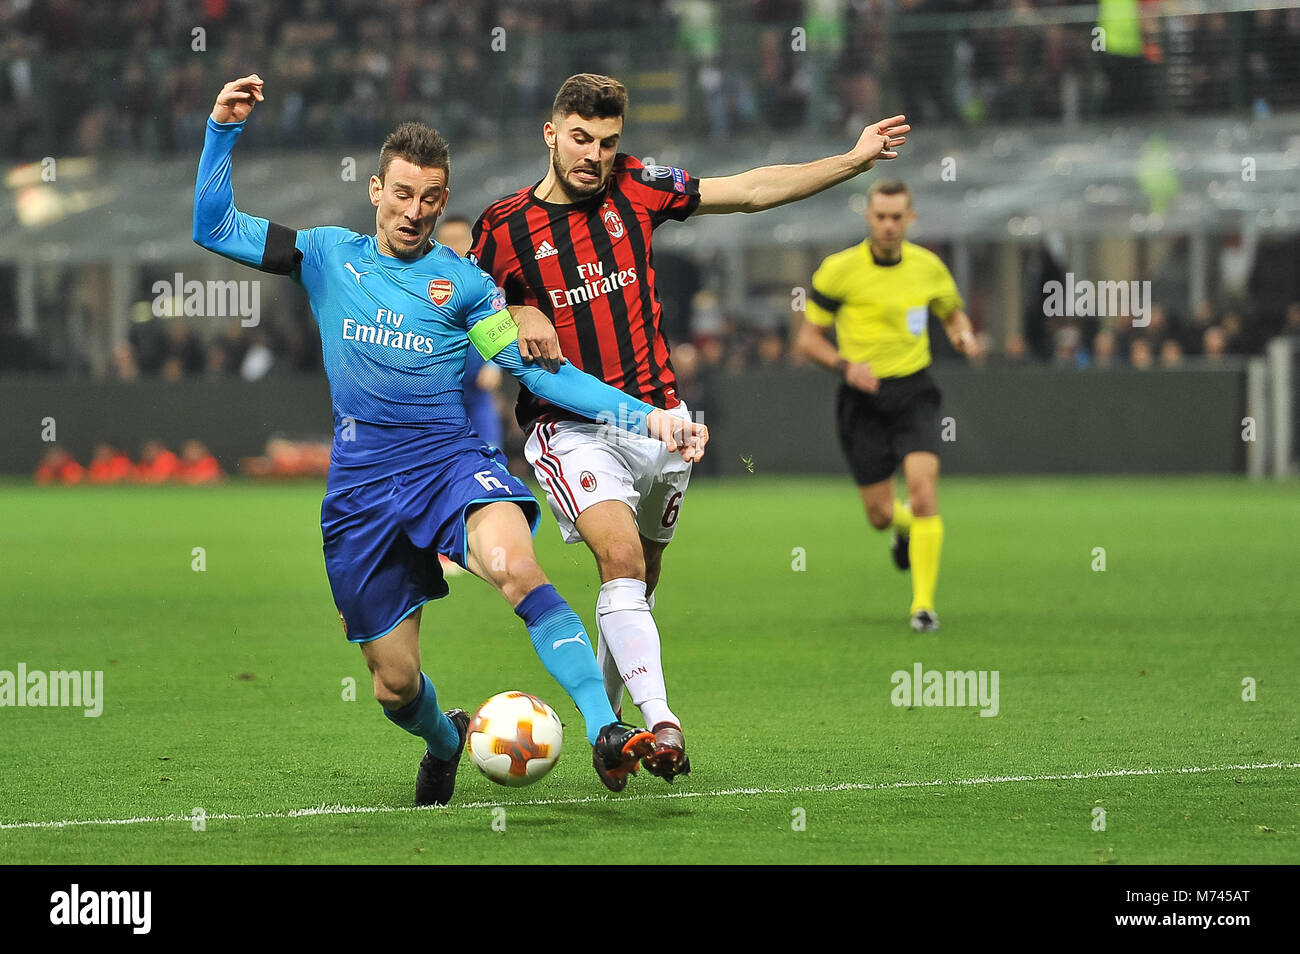 Milan, Italy. 8th March, 2018. Laurent Koscielny (Arsenal FC) during the match UEFA Europa League between AC Milan Stock Photo